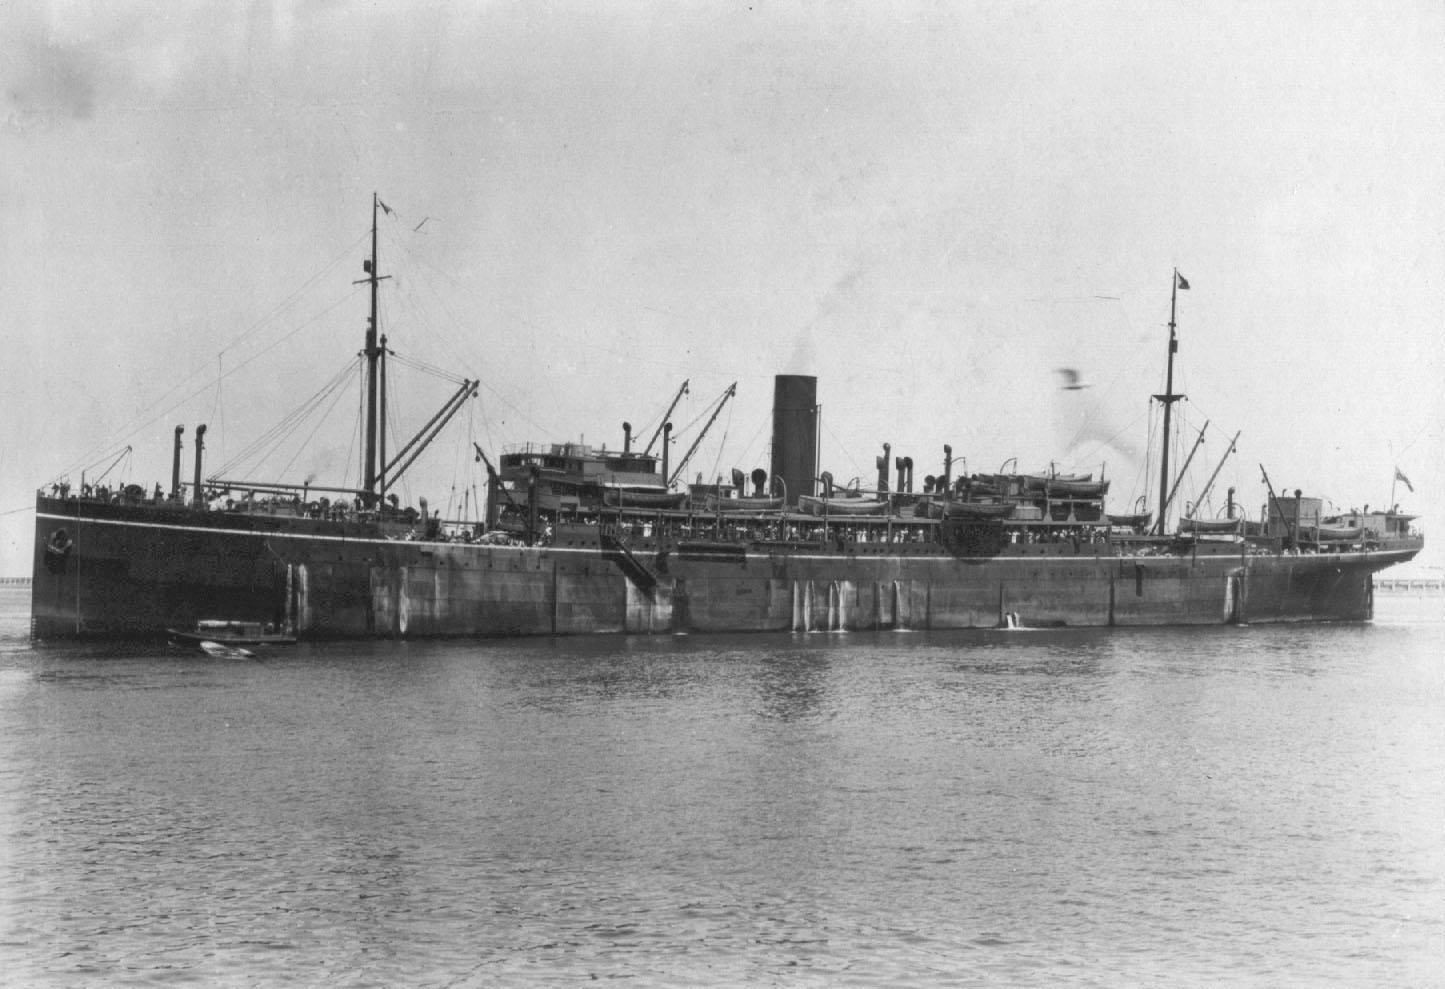 """Passenger vessel """"Beltana"""", built in 1912 by Caird & Co, Greenock, Scotland. Base Port:  London Tonnage:  11120 gross Dimensions:  length 515', breadth 63', draught 28' Motive Power:  Quadruple expansion engines (9000 IHP) Screws:  twin Service Spee"""